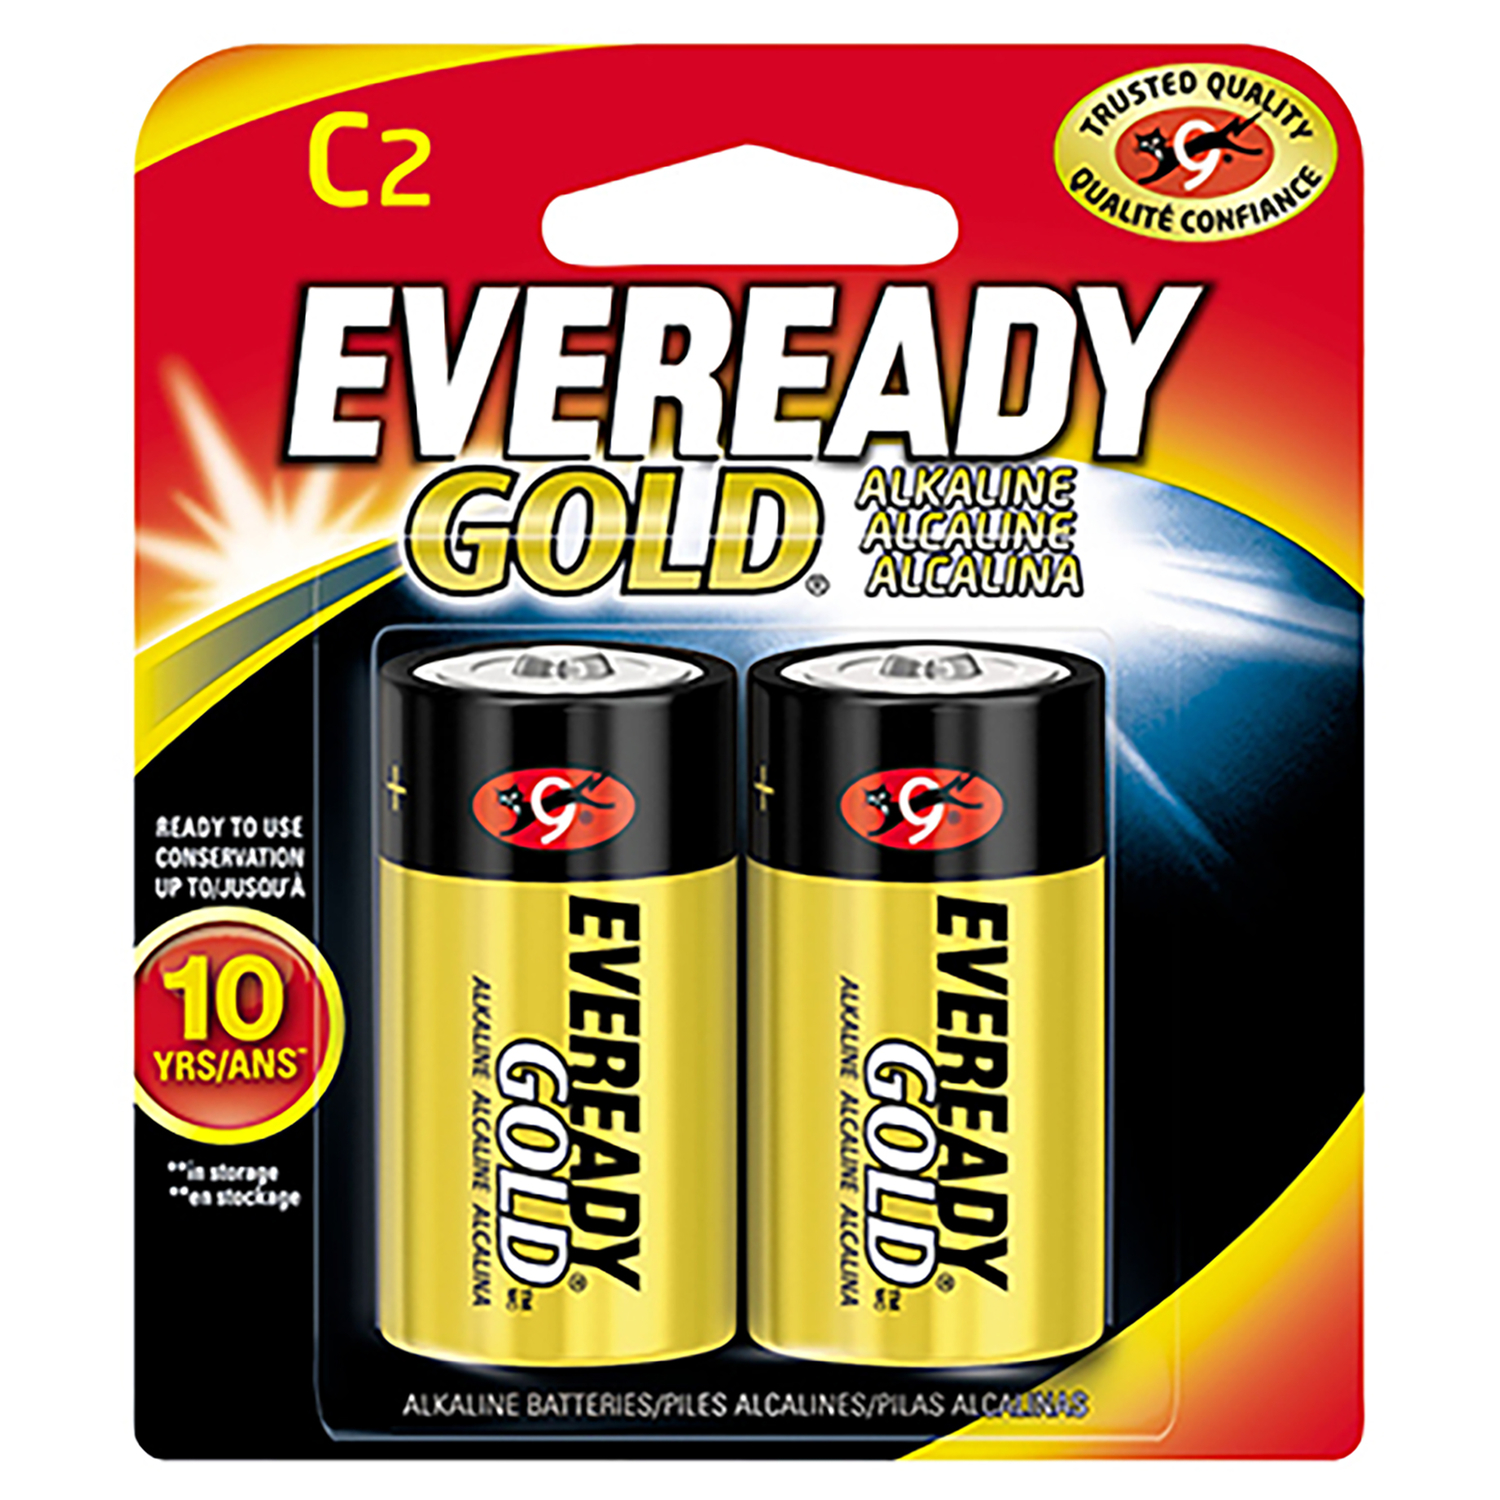 Eveready  Gold  C  Alkaline  Batteries  2 pk Carded  1.5 volts